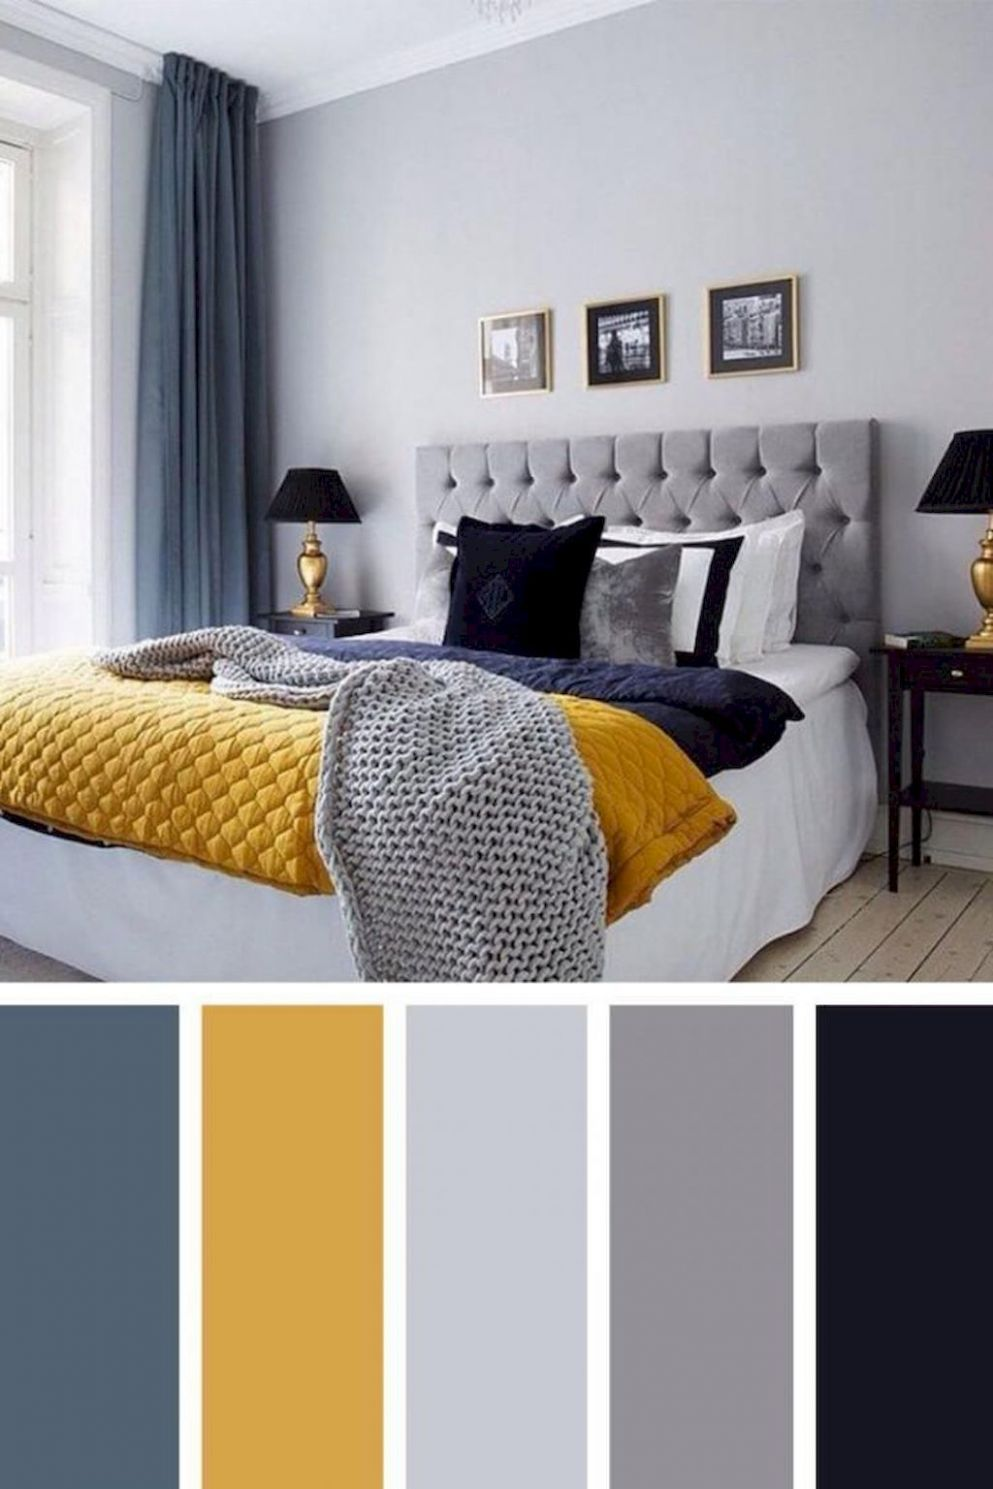 10 Simple Bedroom Decorating Ideas with Beautiful Color ...